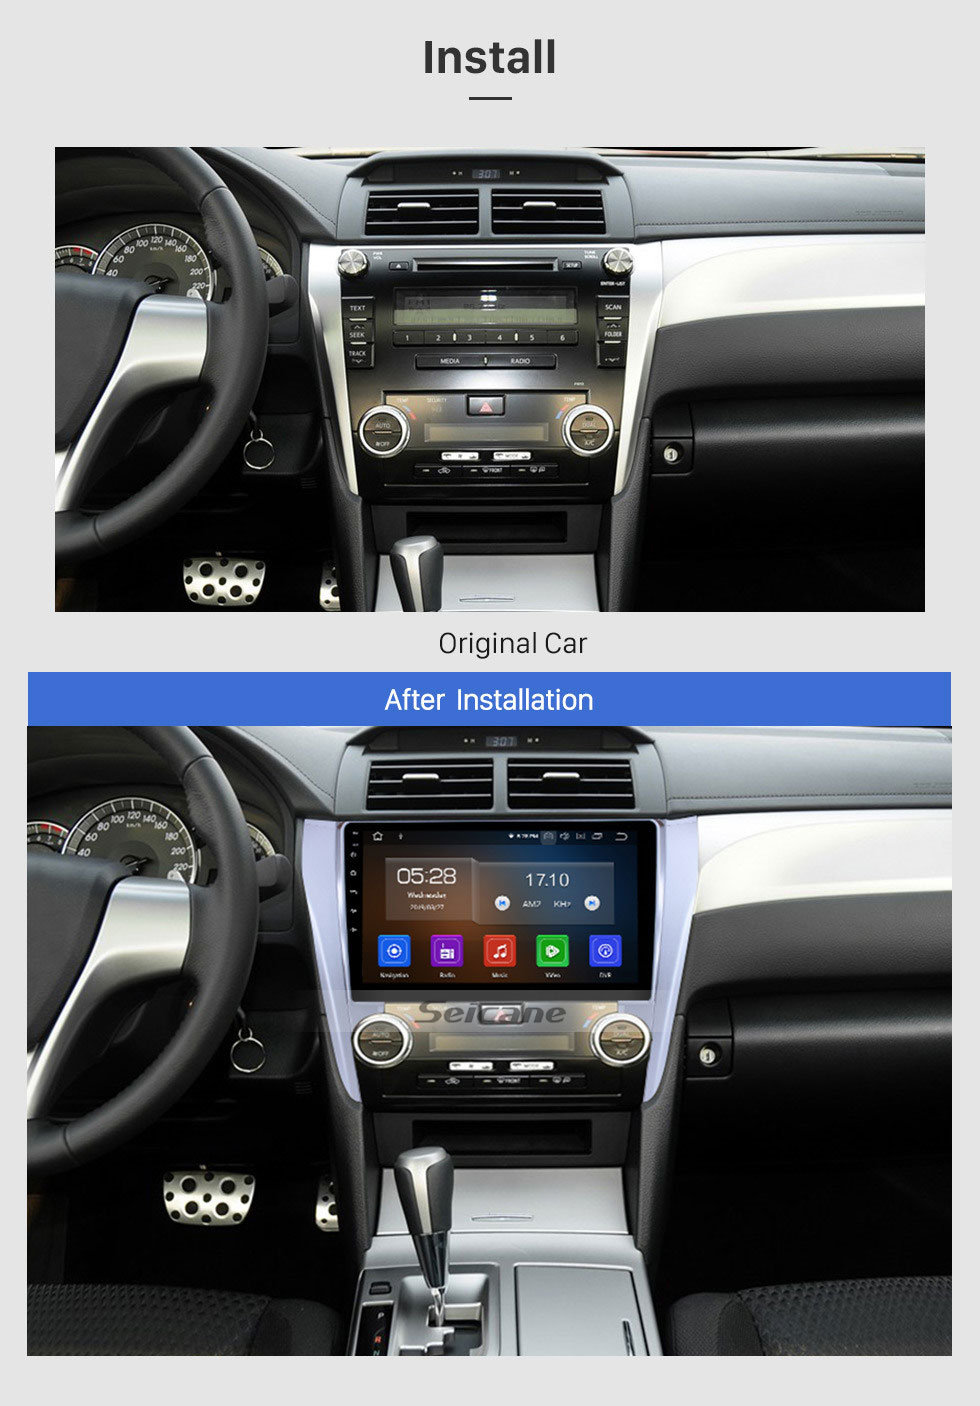 Seicane 10.1 inch Android 9.0 head unit GPS  navigation system for 2012 2013 2014 2015 Toyota  CAMRY Bluetooth Radio support DVD player Mirror link Capacitive multi-touch screen OBD DVR Rear view camera TV 3G WIFI USB